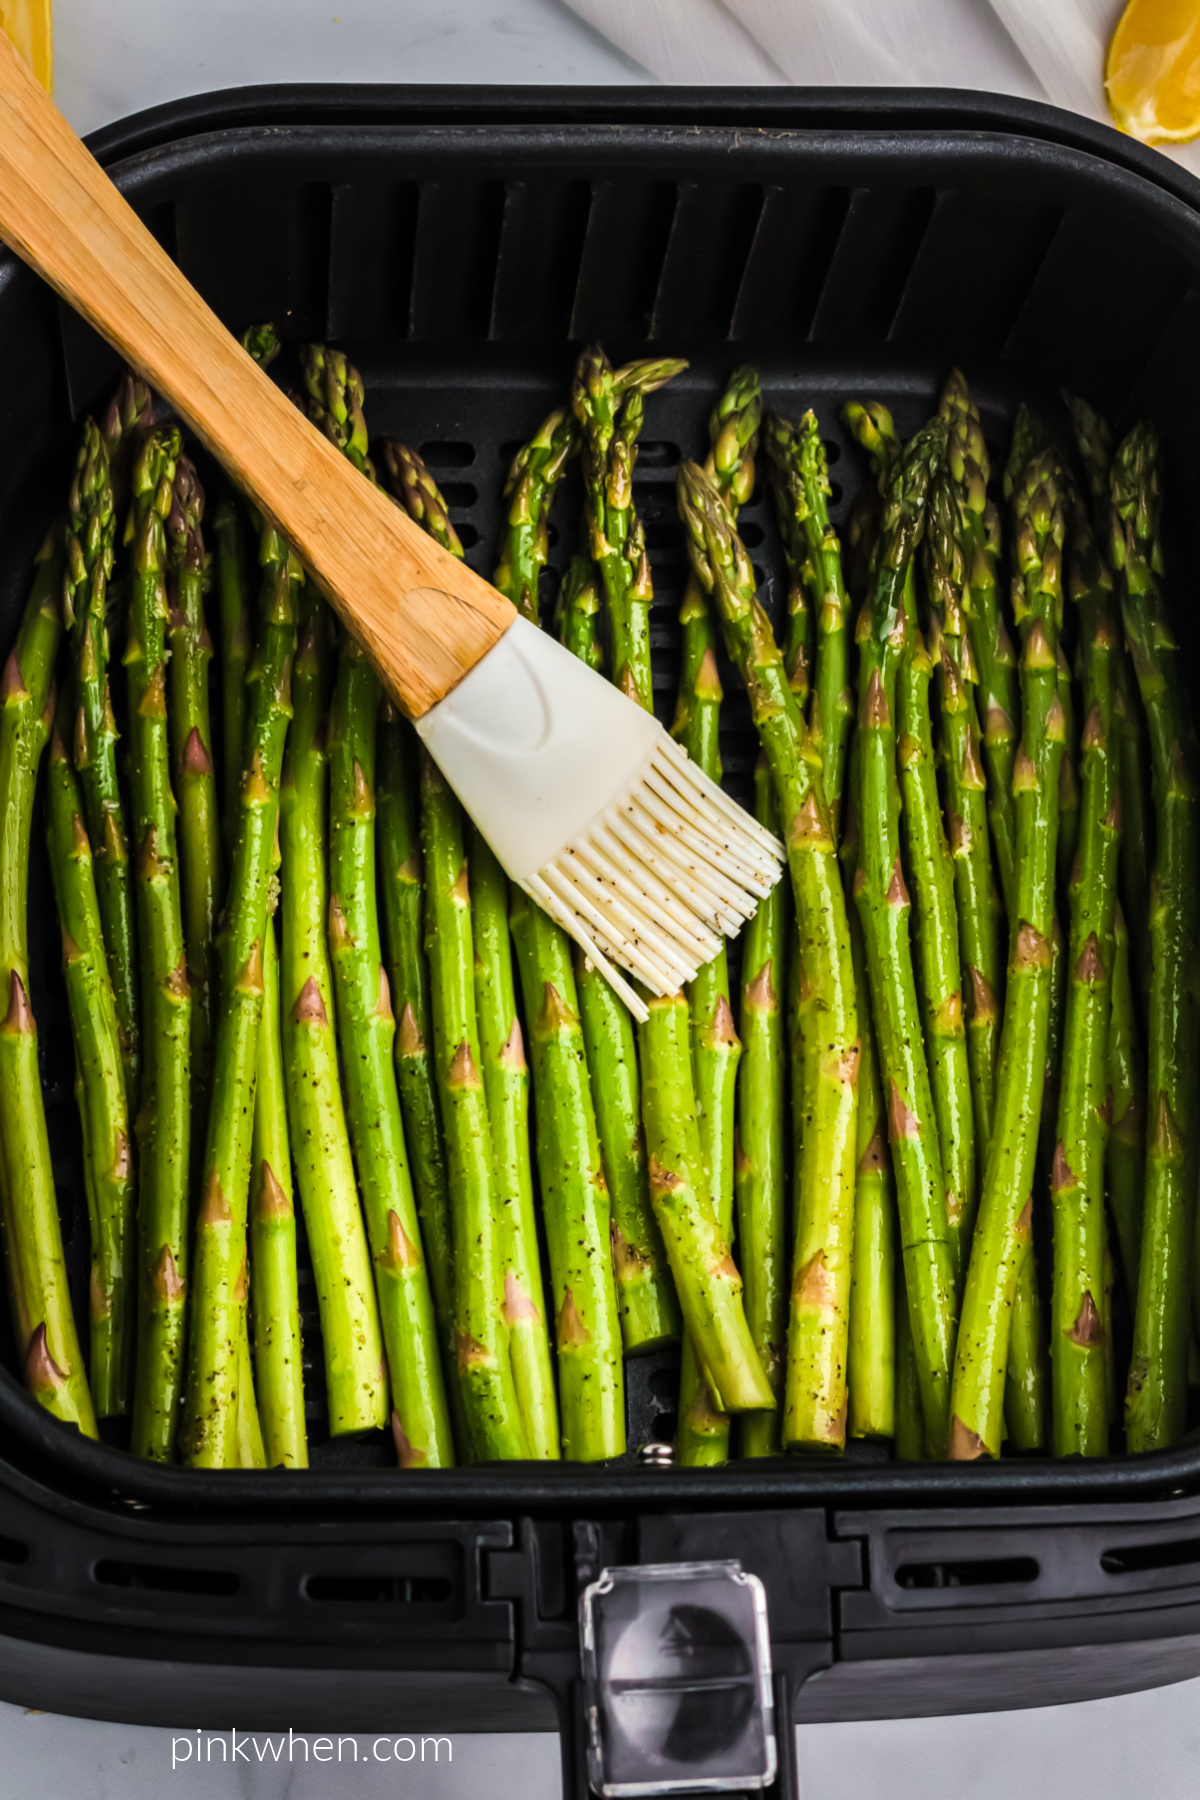 Asparagus in the air fryer basket being brushed with olive oil before air frying.